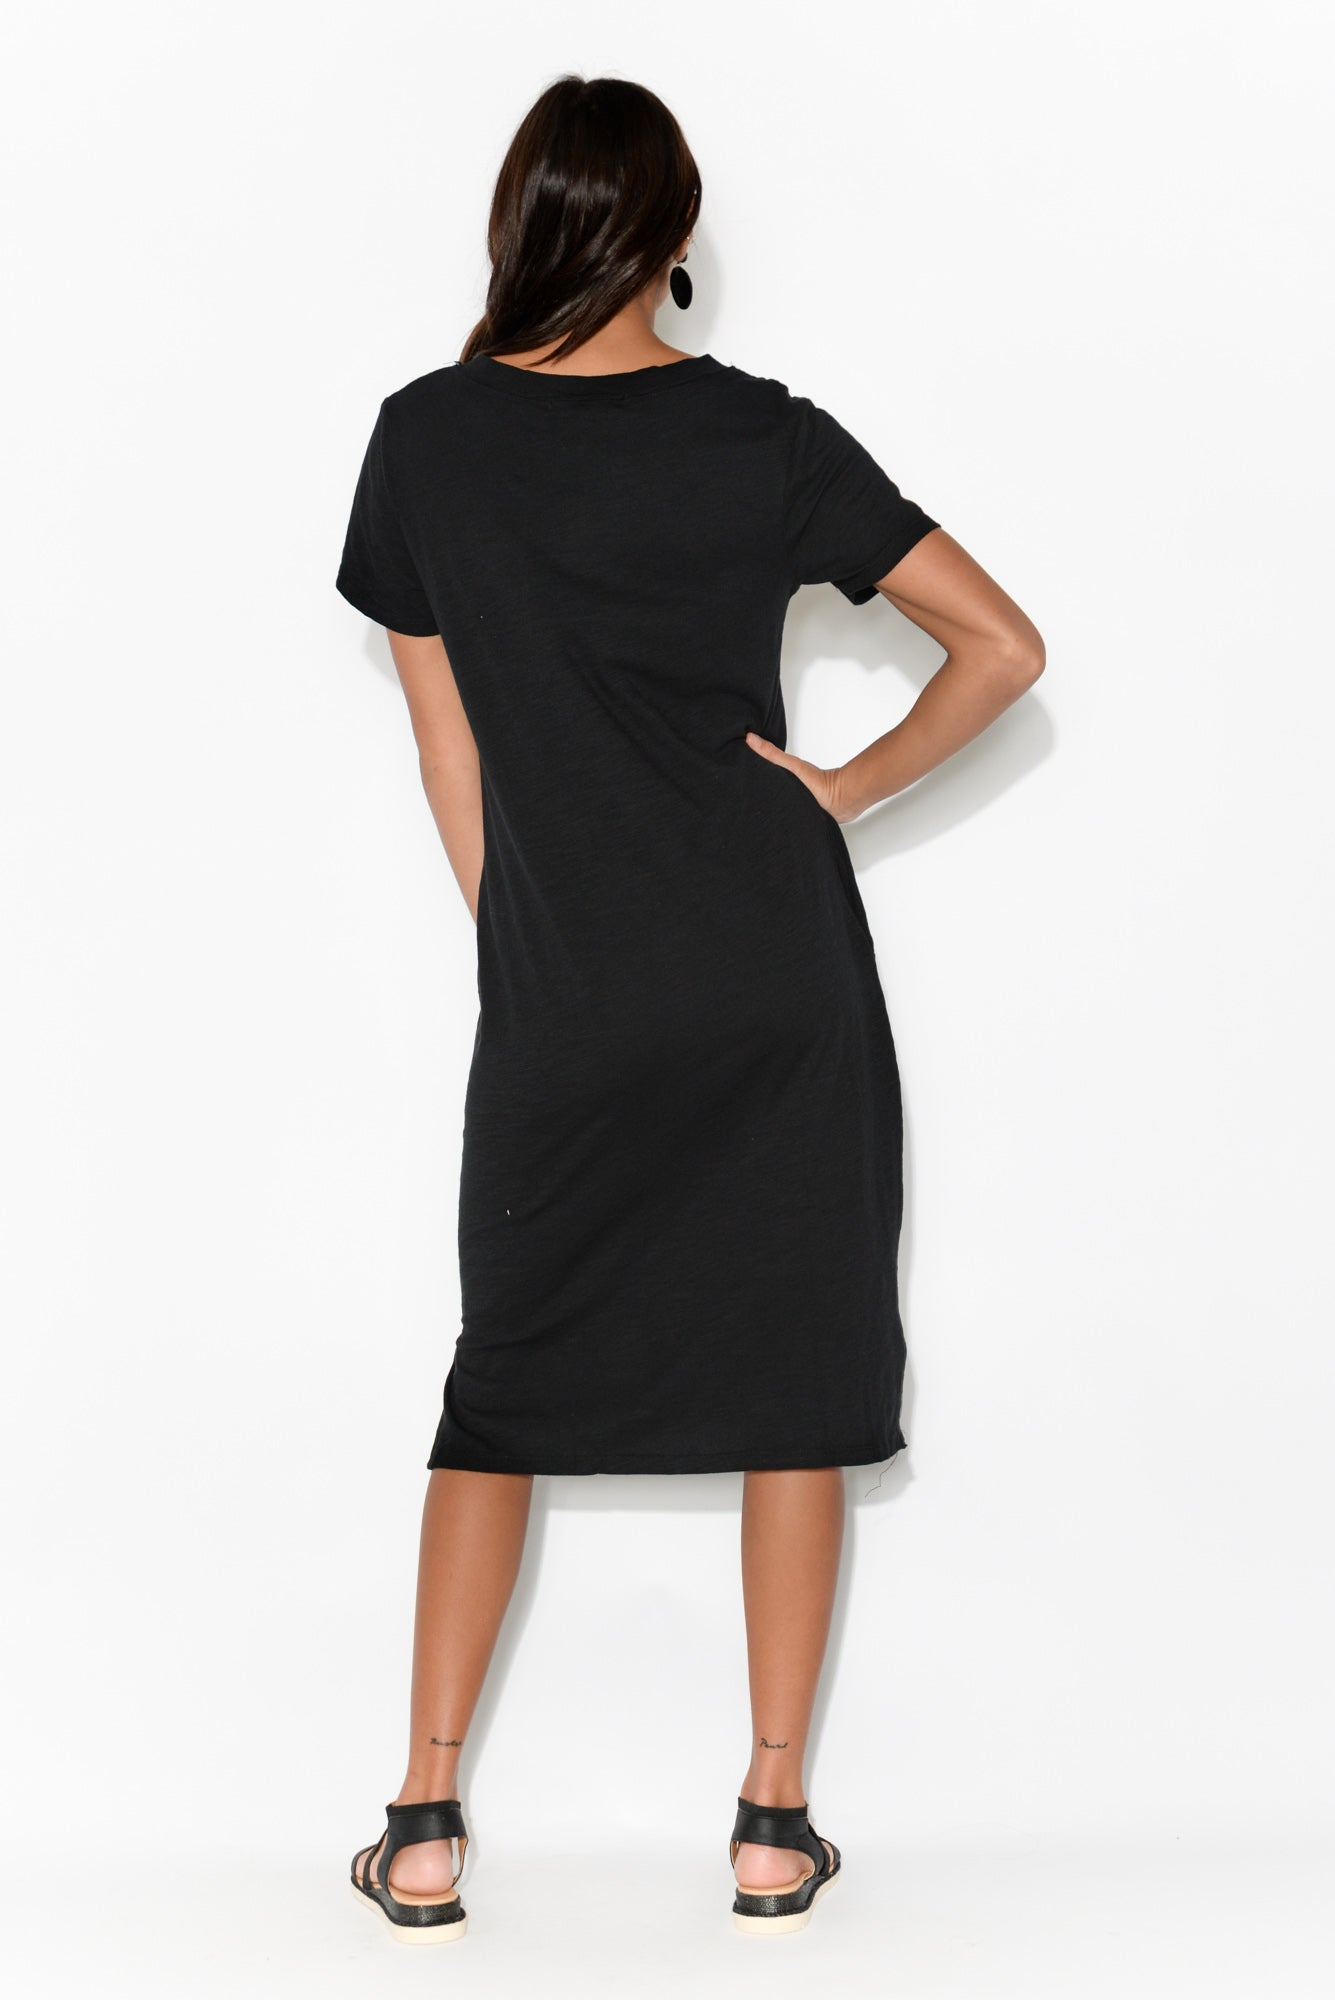 Hedy Black Cotton Midi Dress